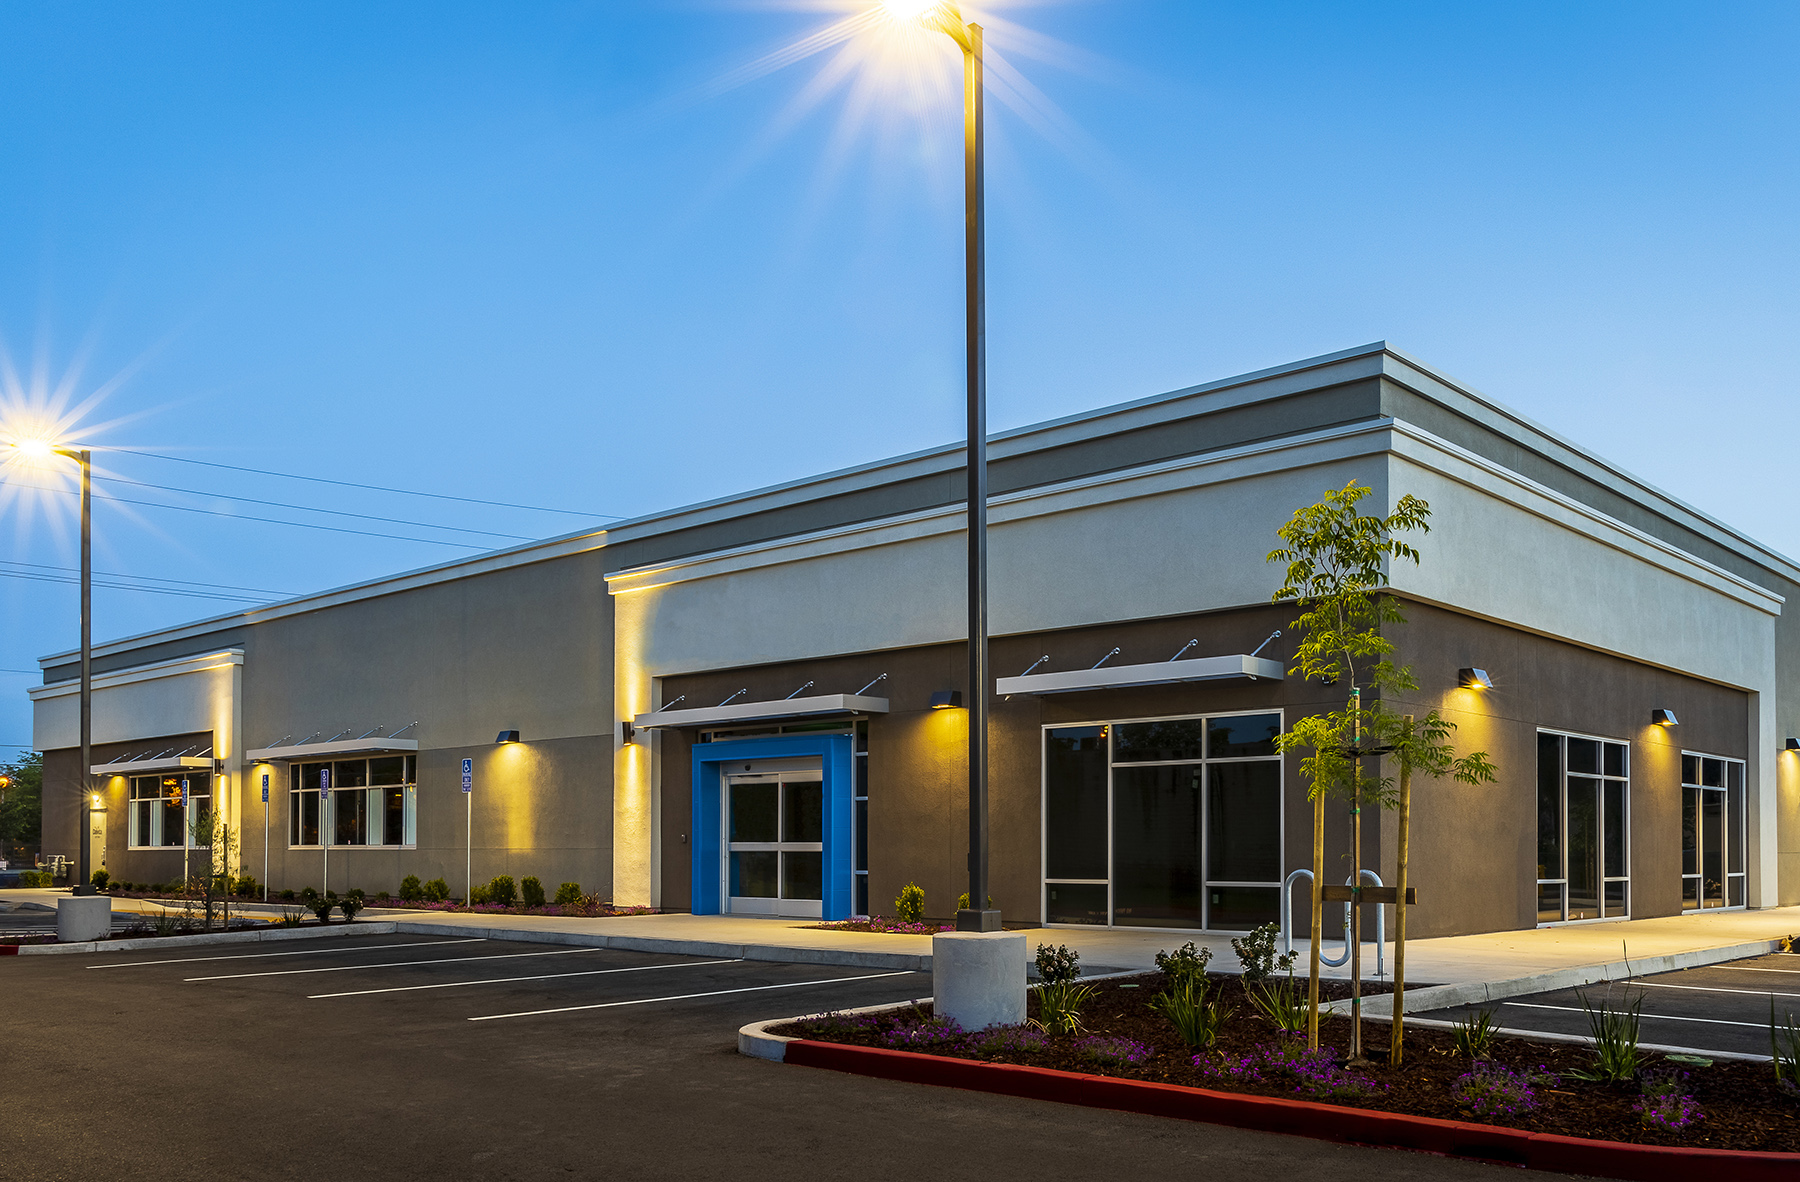 Meridian Sells 13,600 SF Dialysis Clinic in Stockton for $7.5 Million